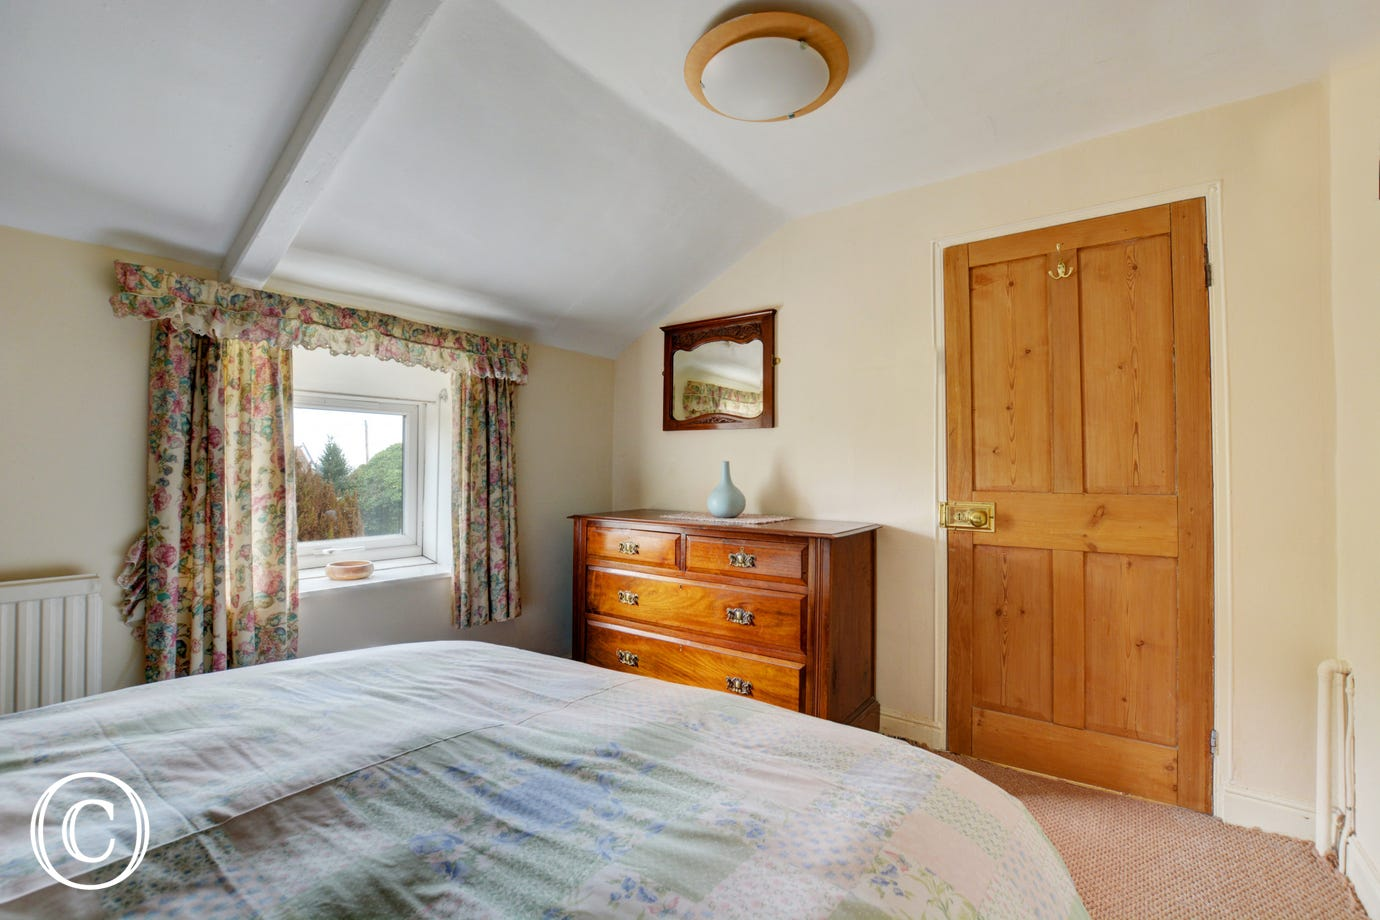 Bedroom three with double bed and chest of drawers.